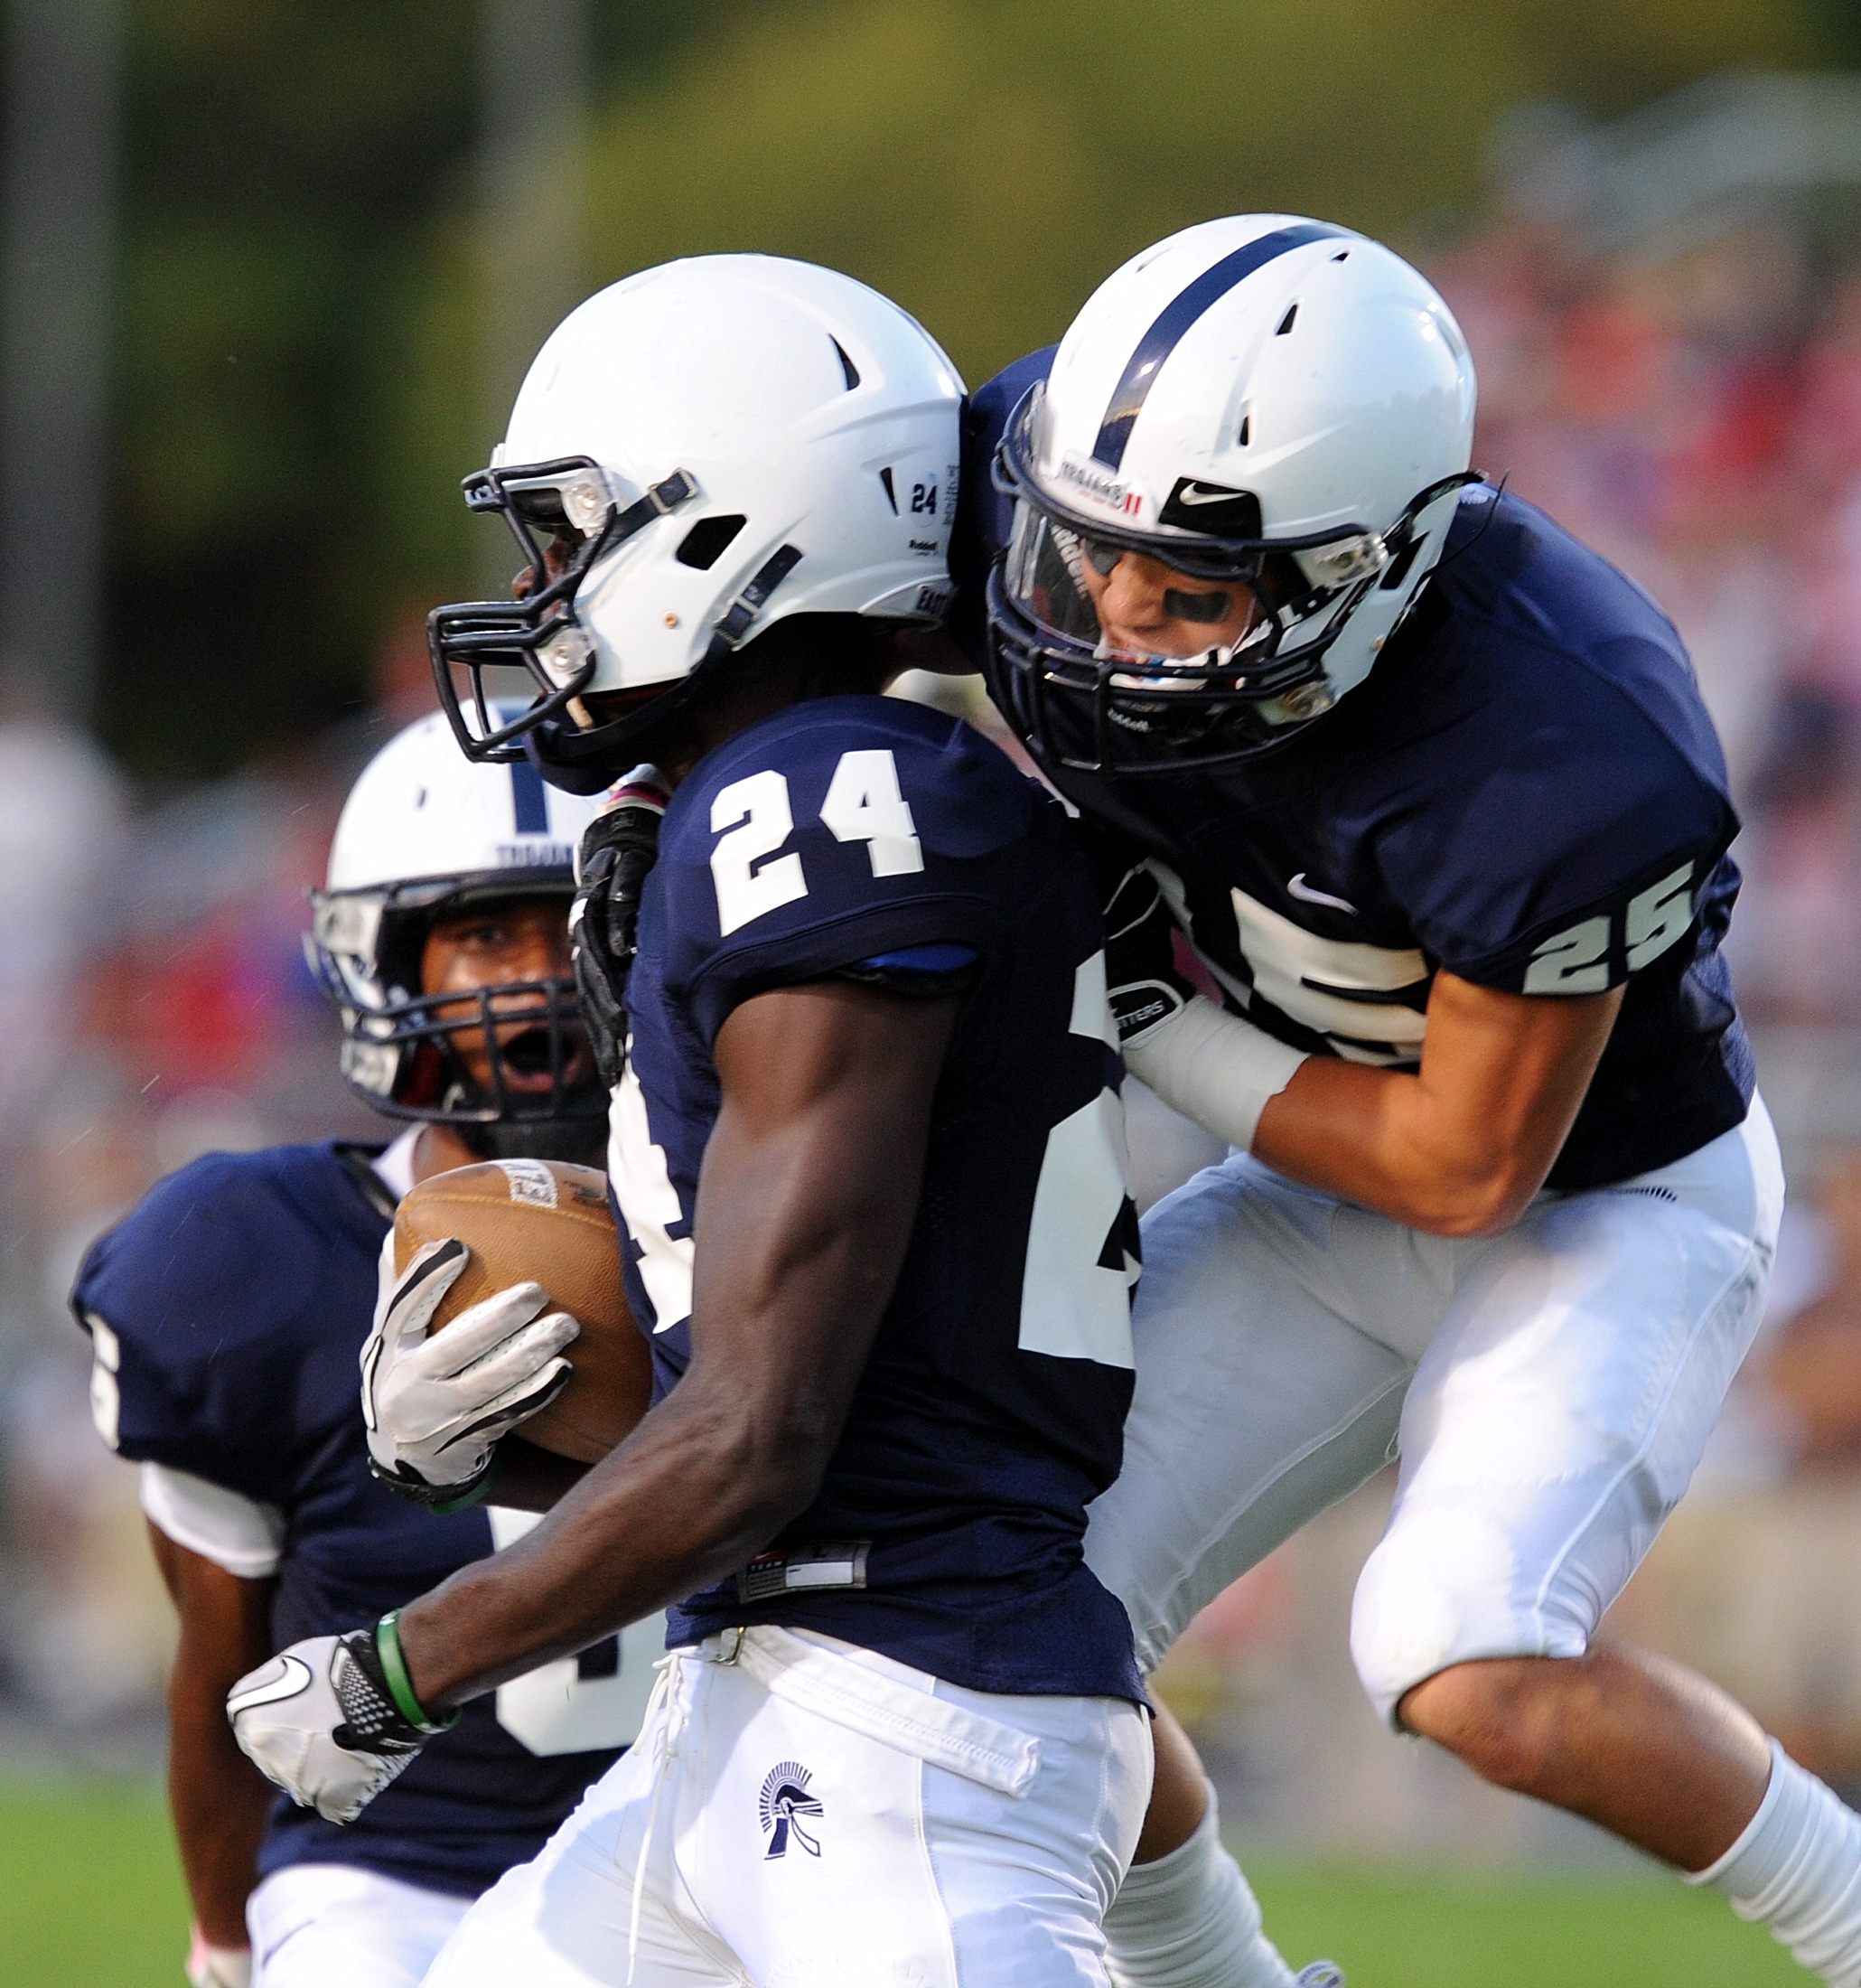 Varsity Football Opens 2014 Season at Home